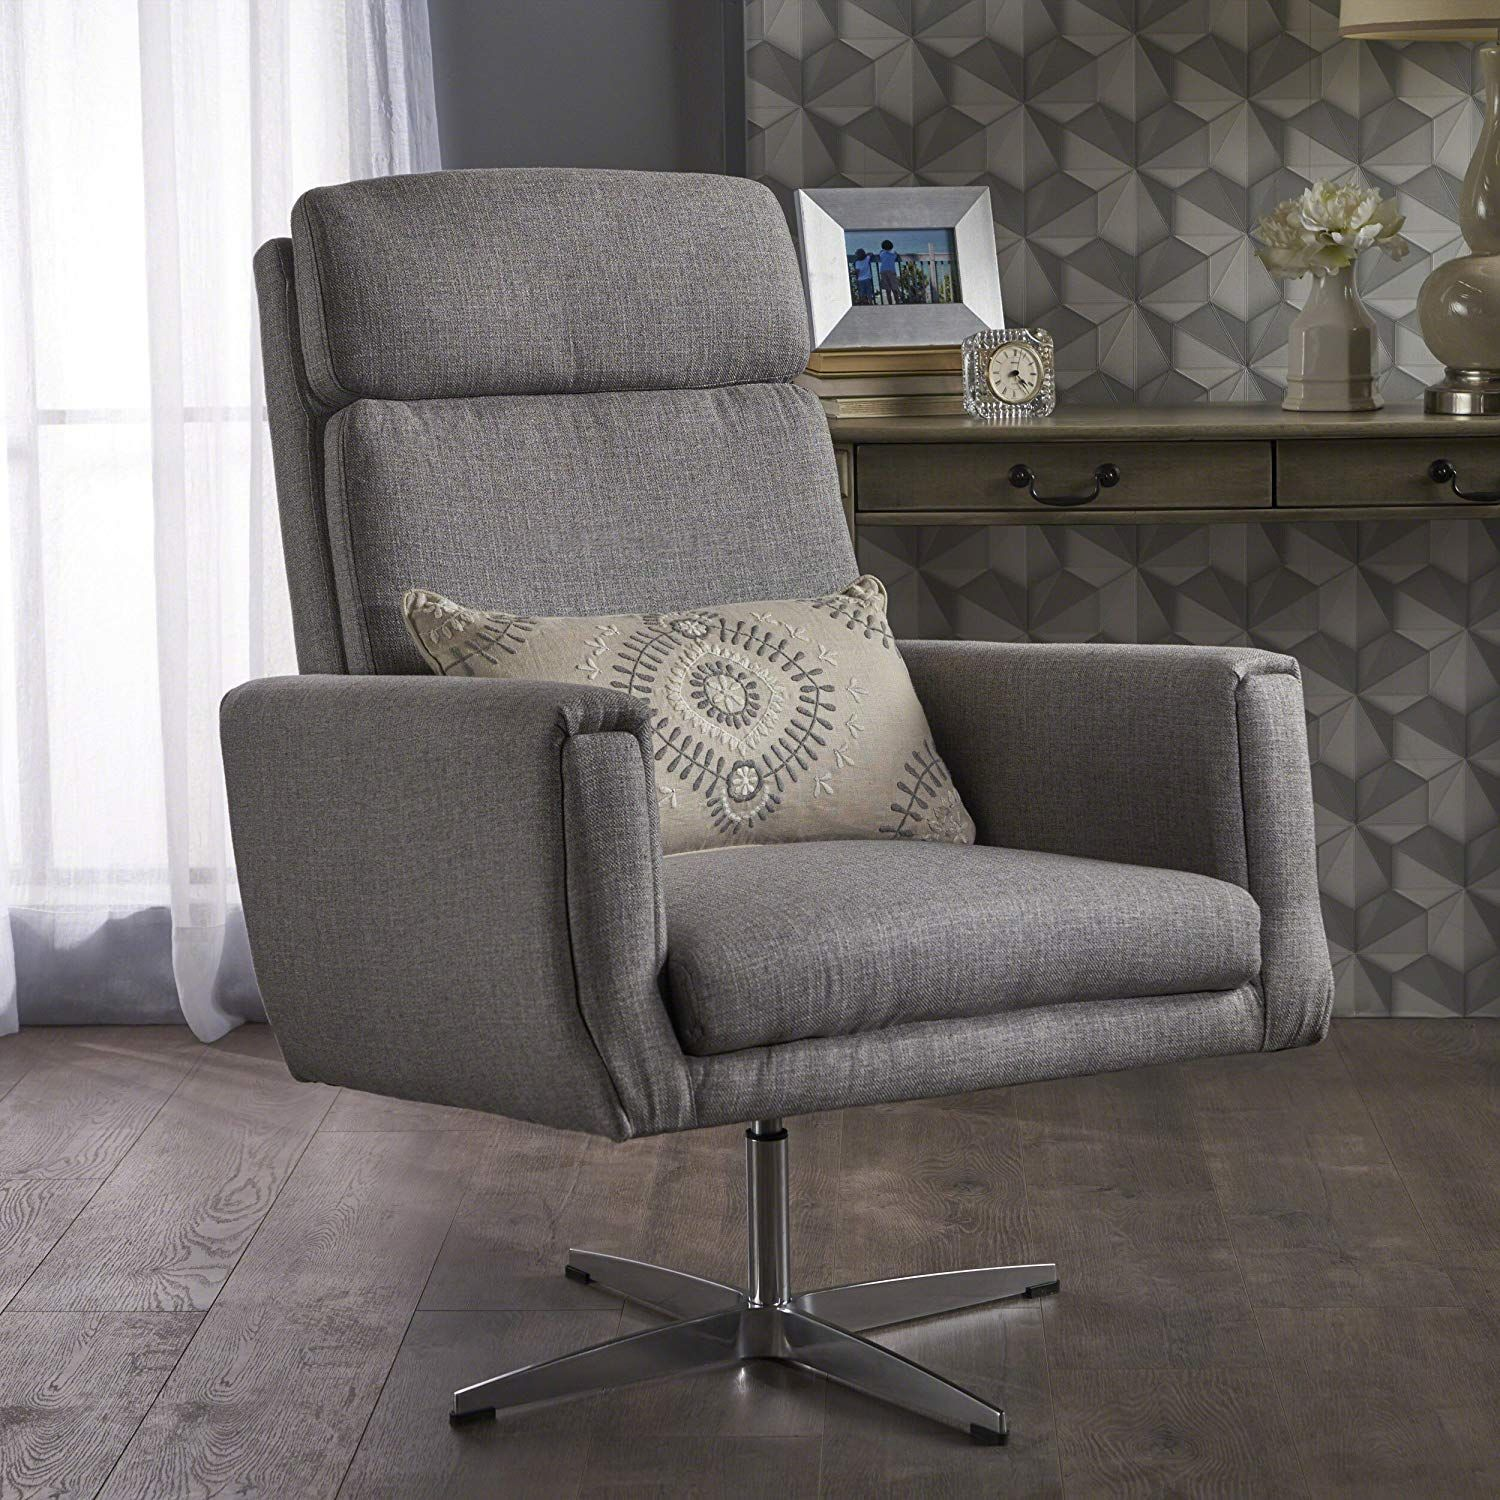 Hooper Swivel Arm Chair Perfect for Home Office or